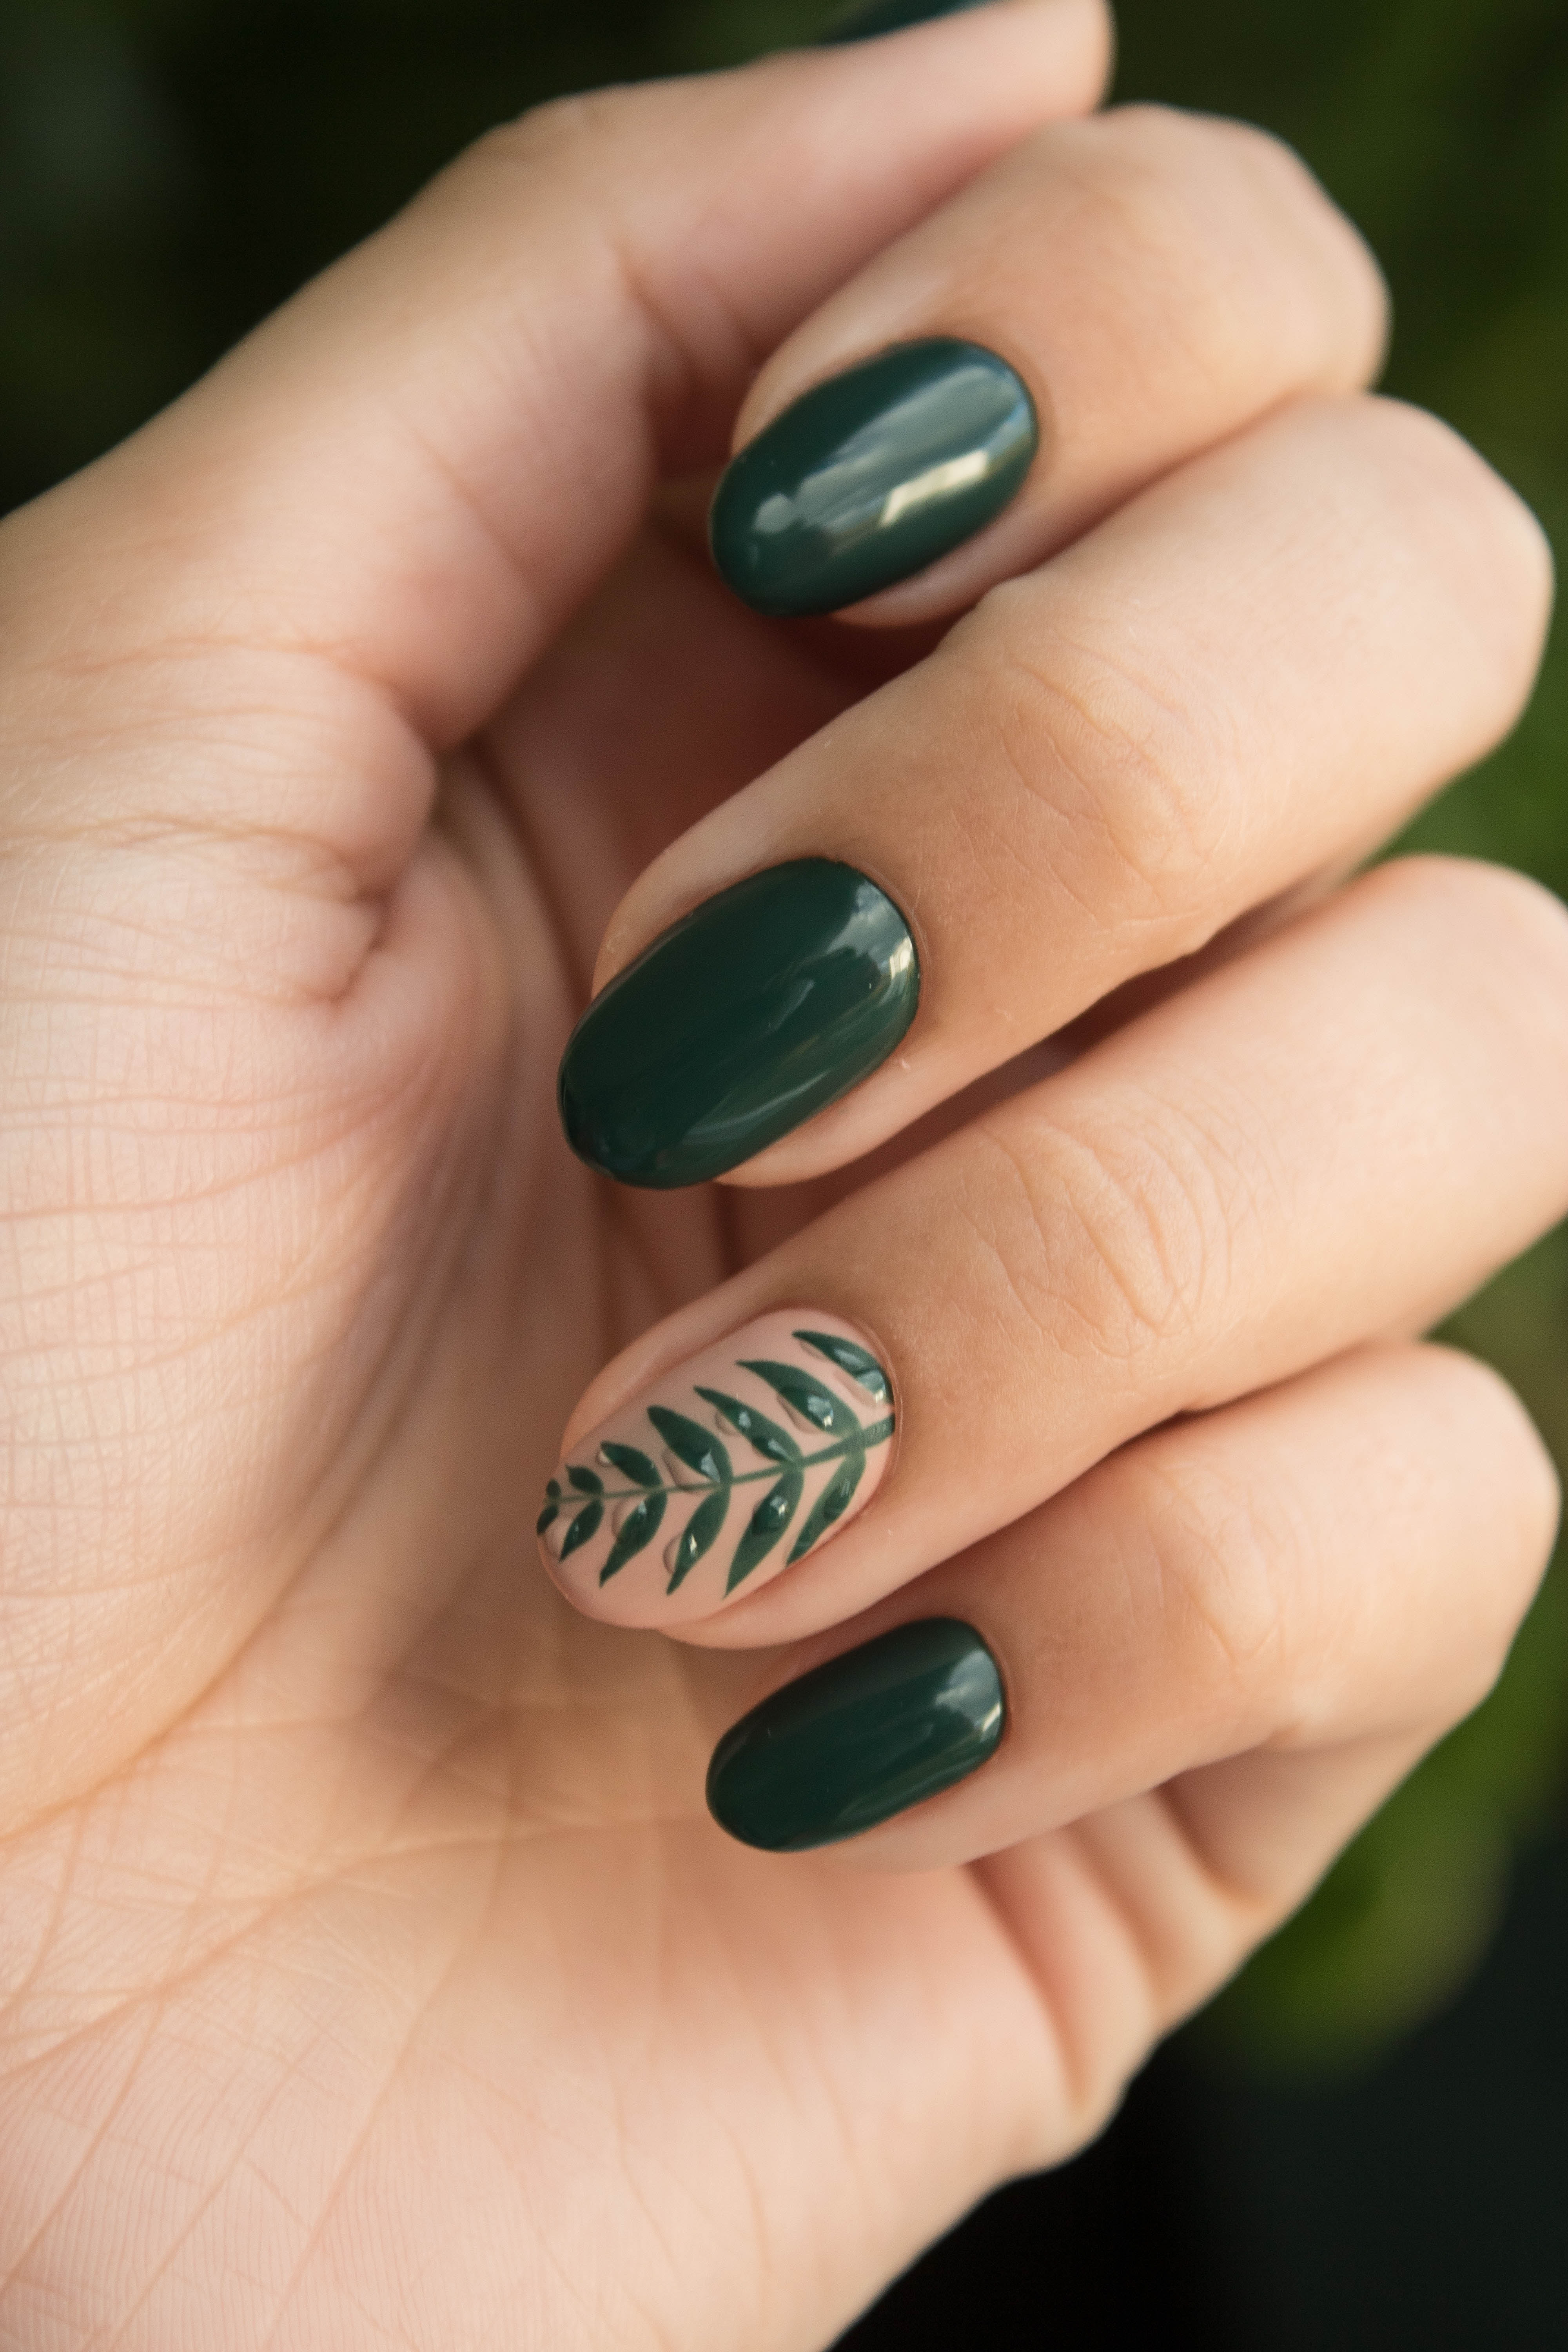 Painted green nails